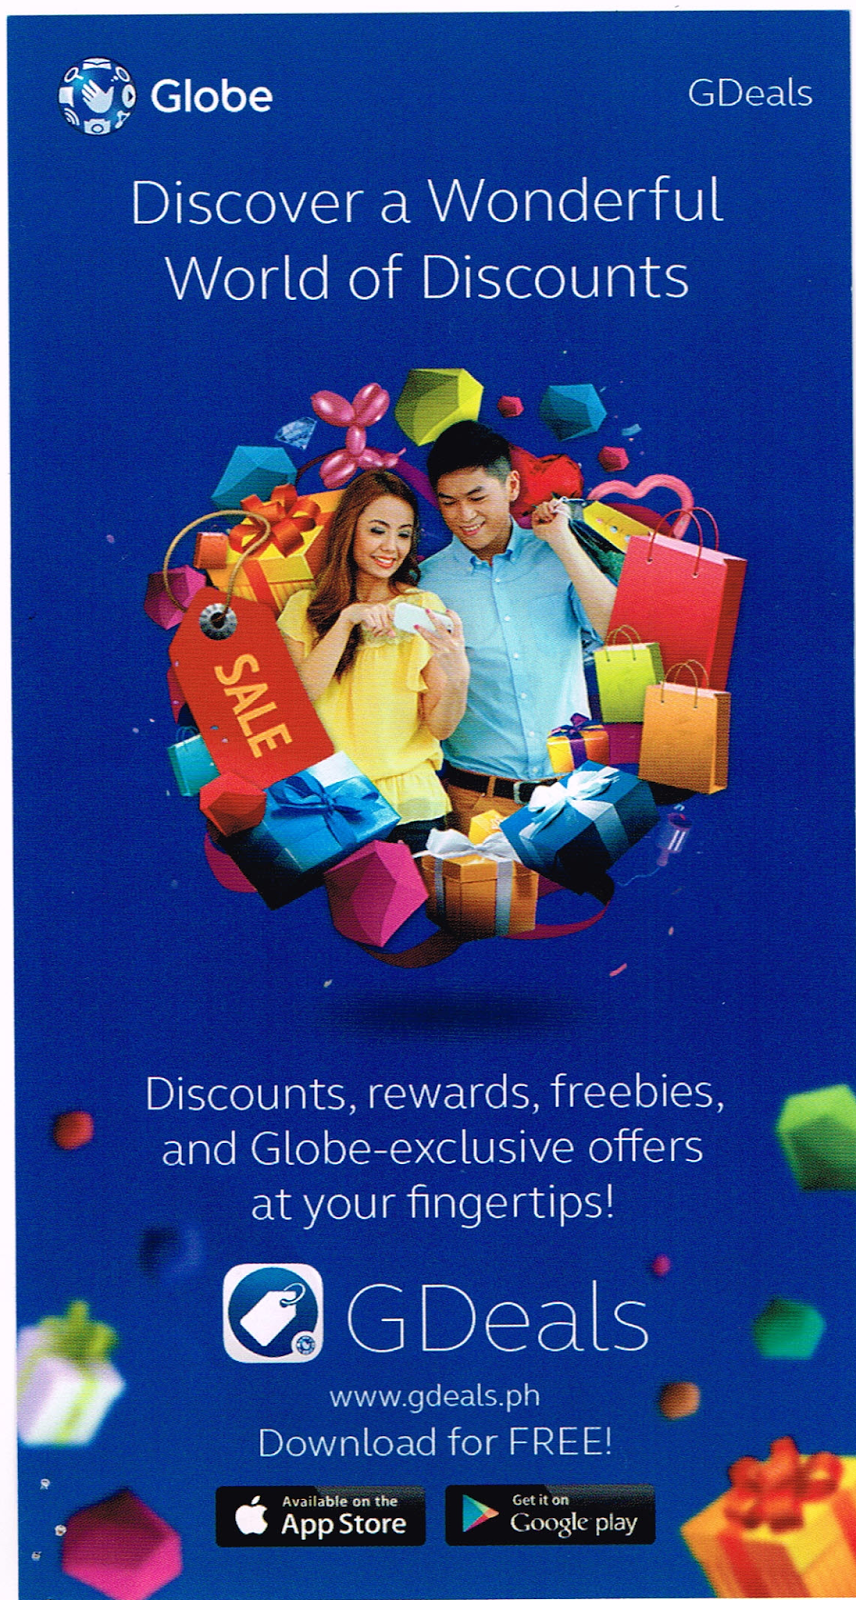 Globe: GDeals Discover a Wonderful World of Discounts!